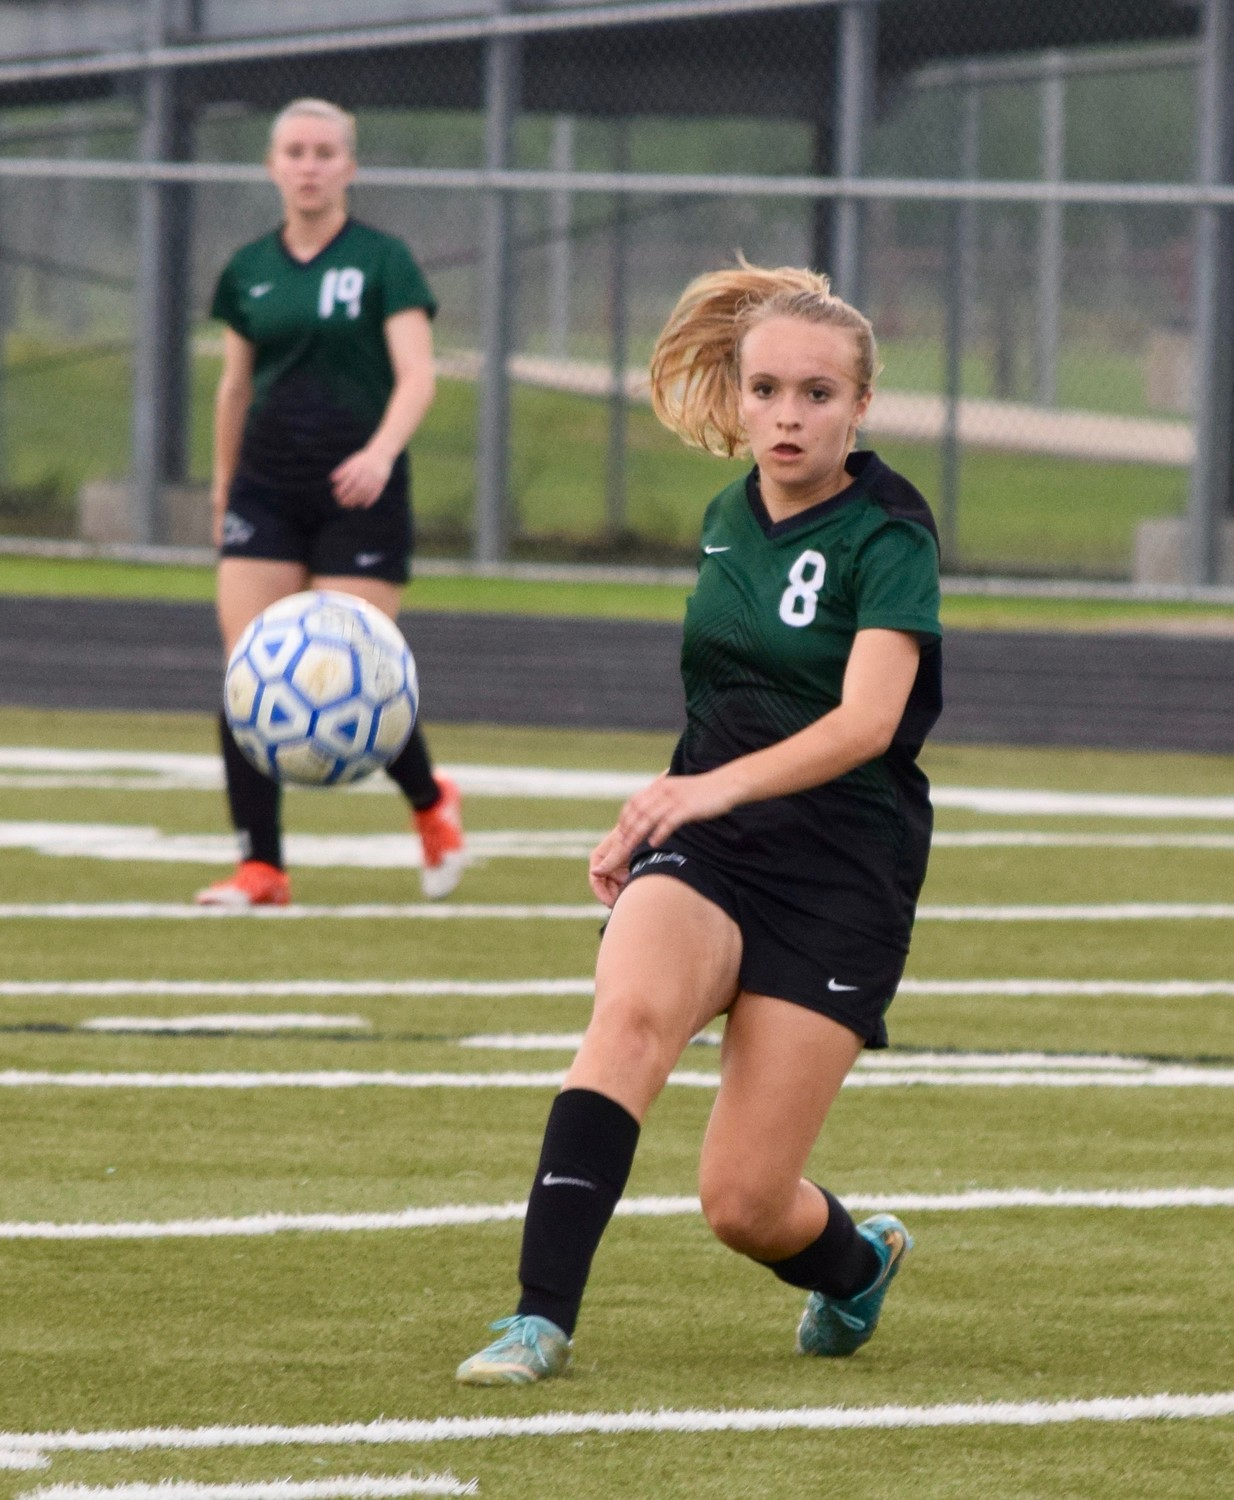 Ainsley Forbes and Cedar Park beat Tomball Memorial 1-0 in Bastrop on Friday to advance to the regional semifinals.